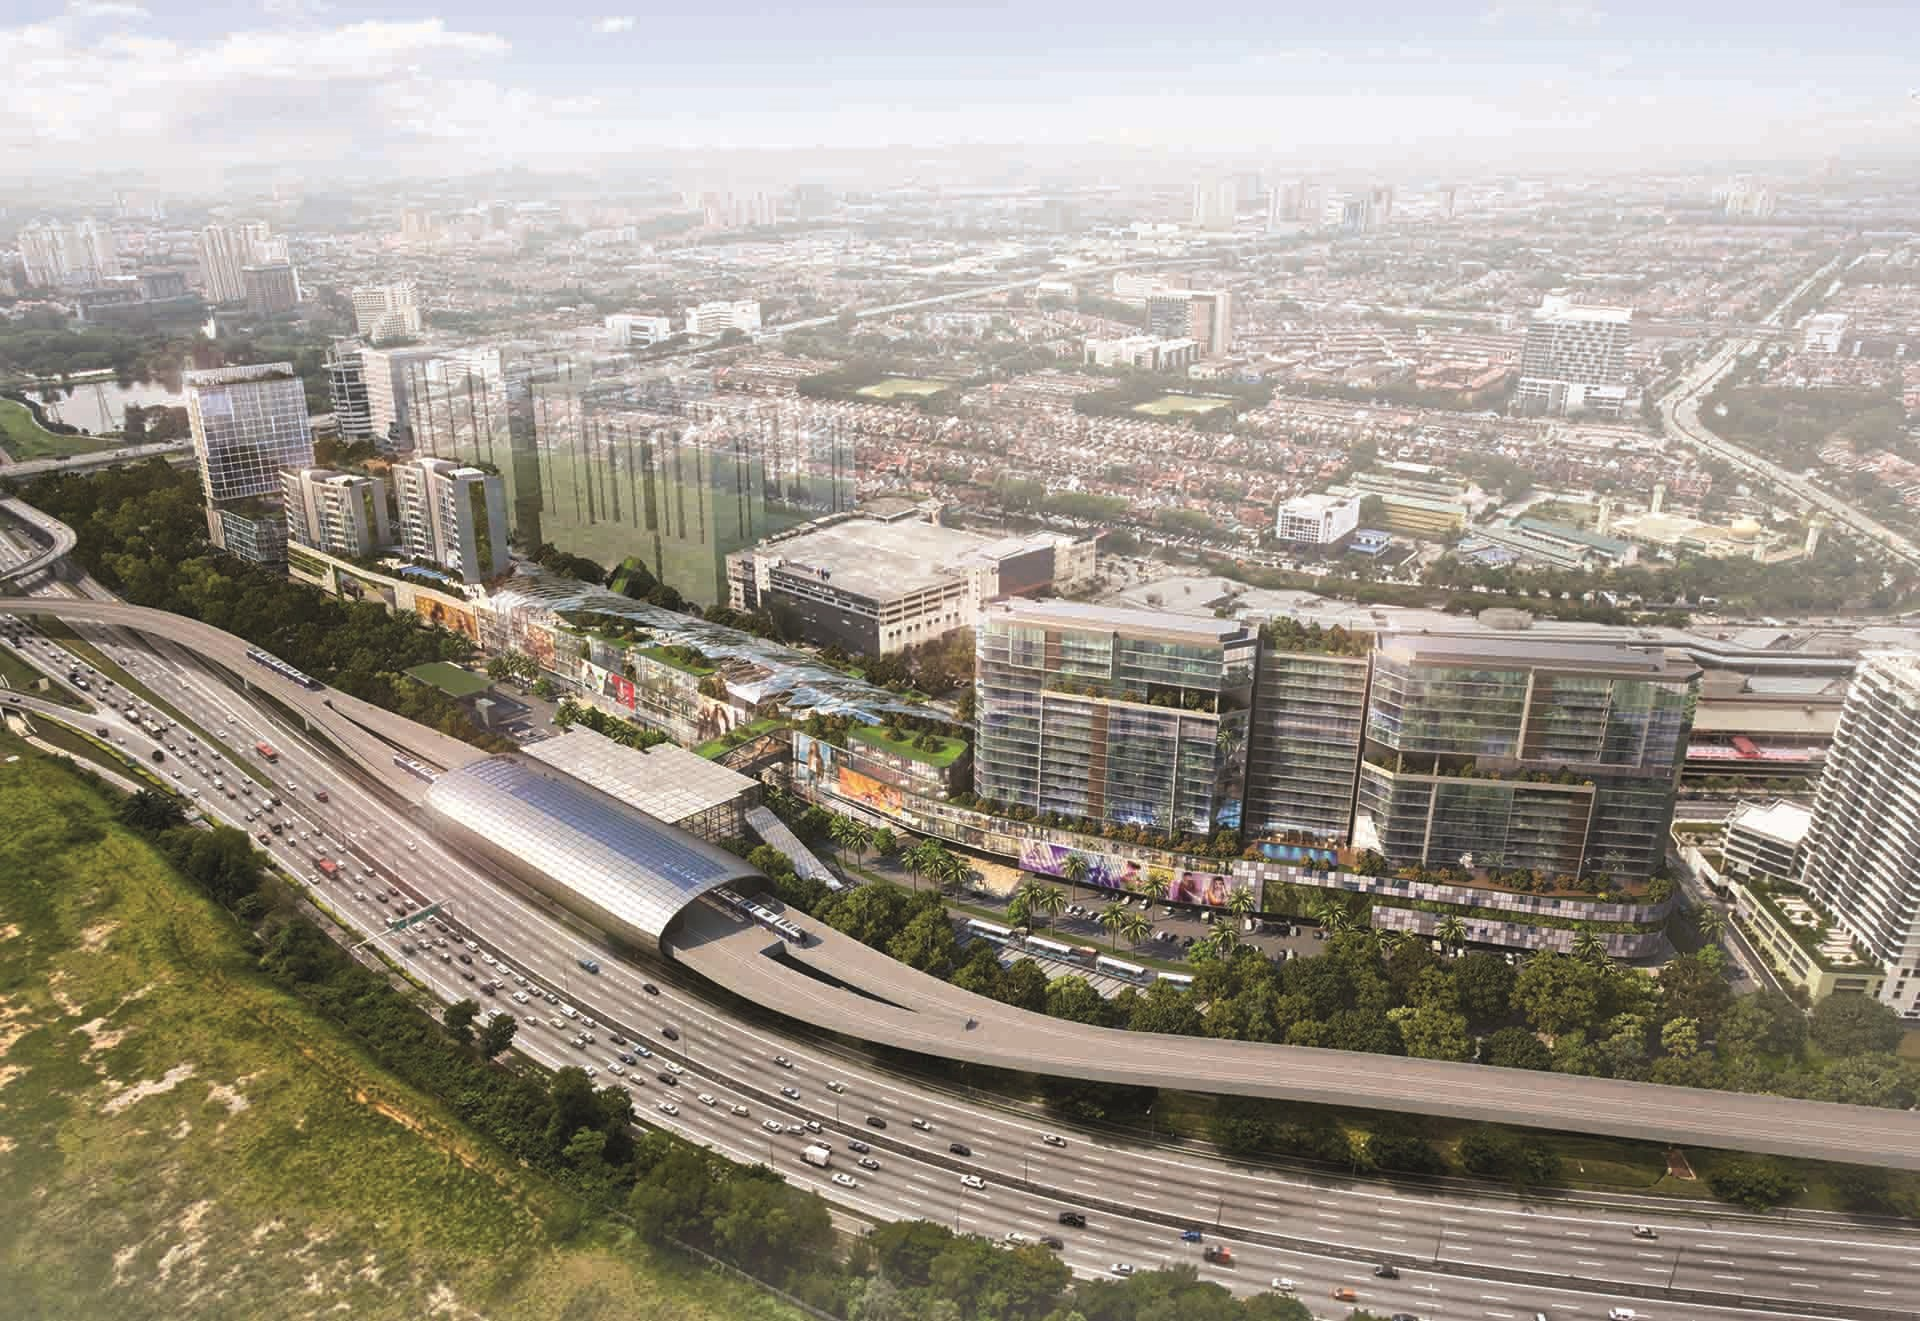 Benoy's Masterplanning in Malaysia and Globally